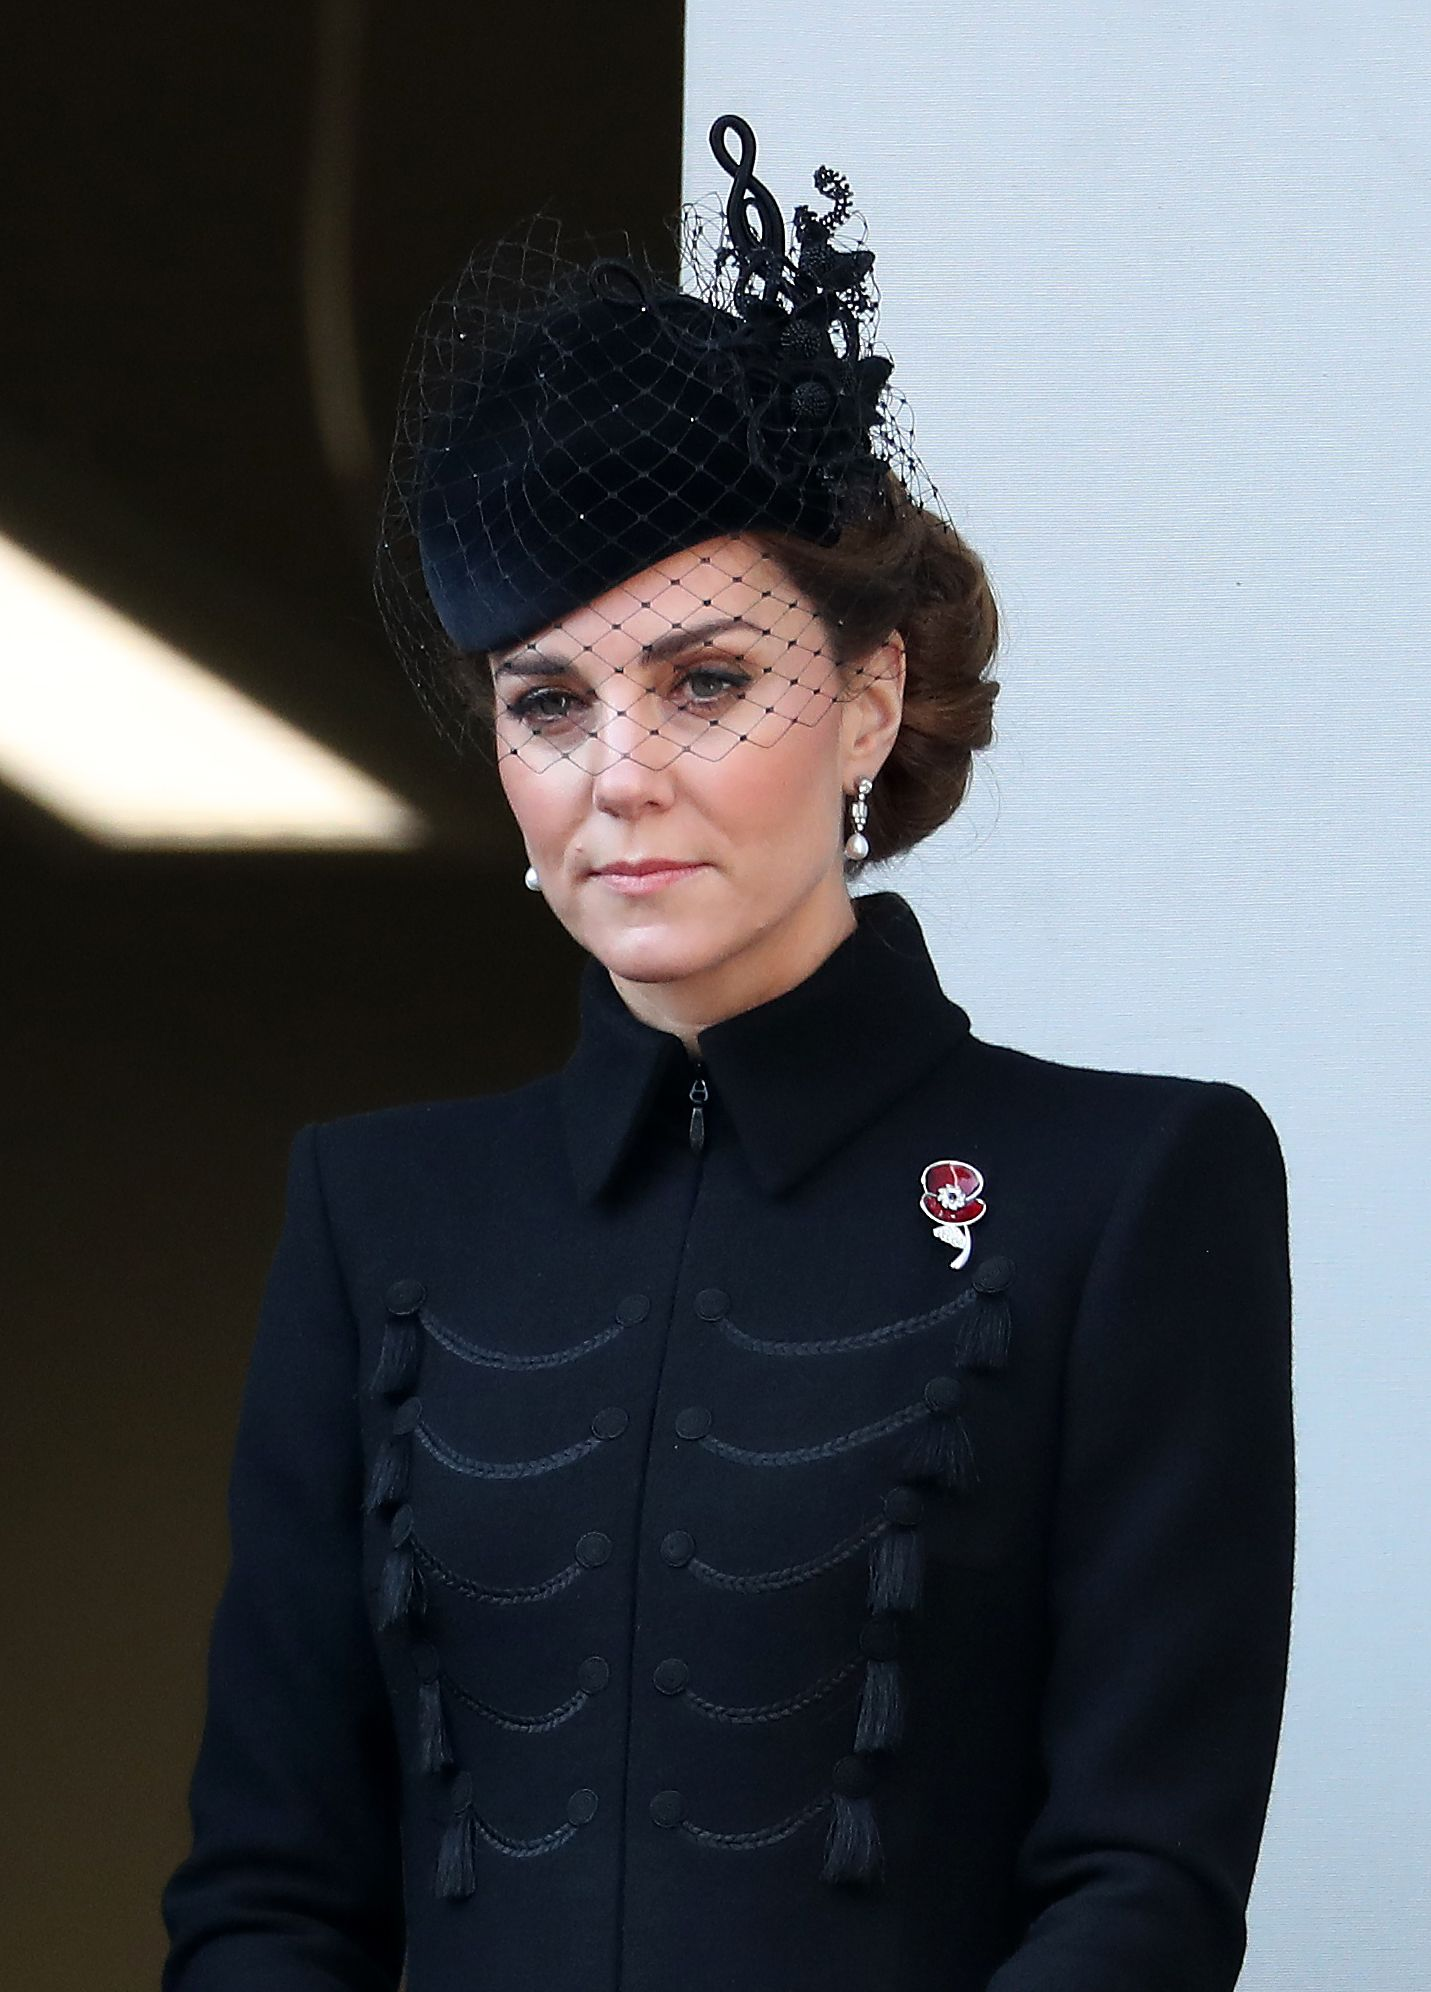 Kate Middleton pays tribute to her grandmother in Remembrance Day outfit